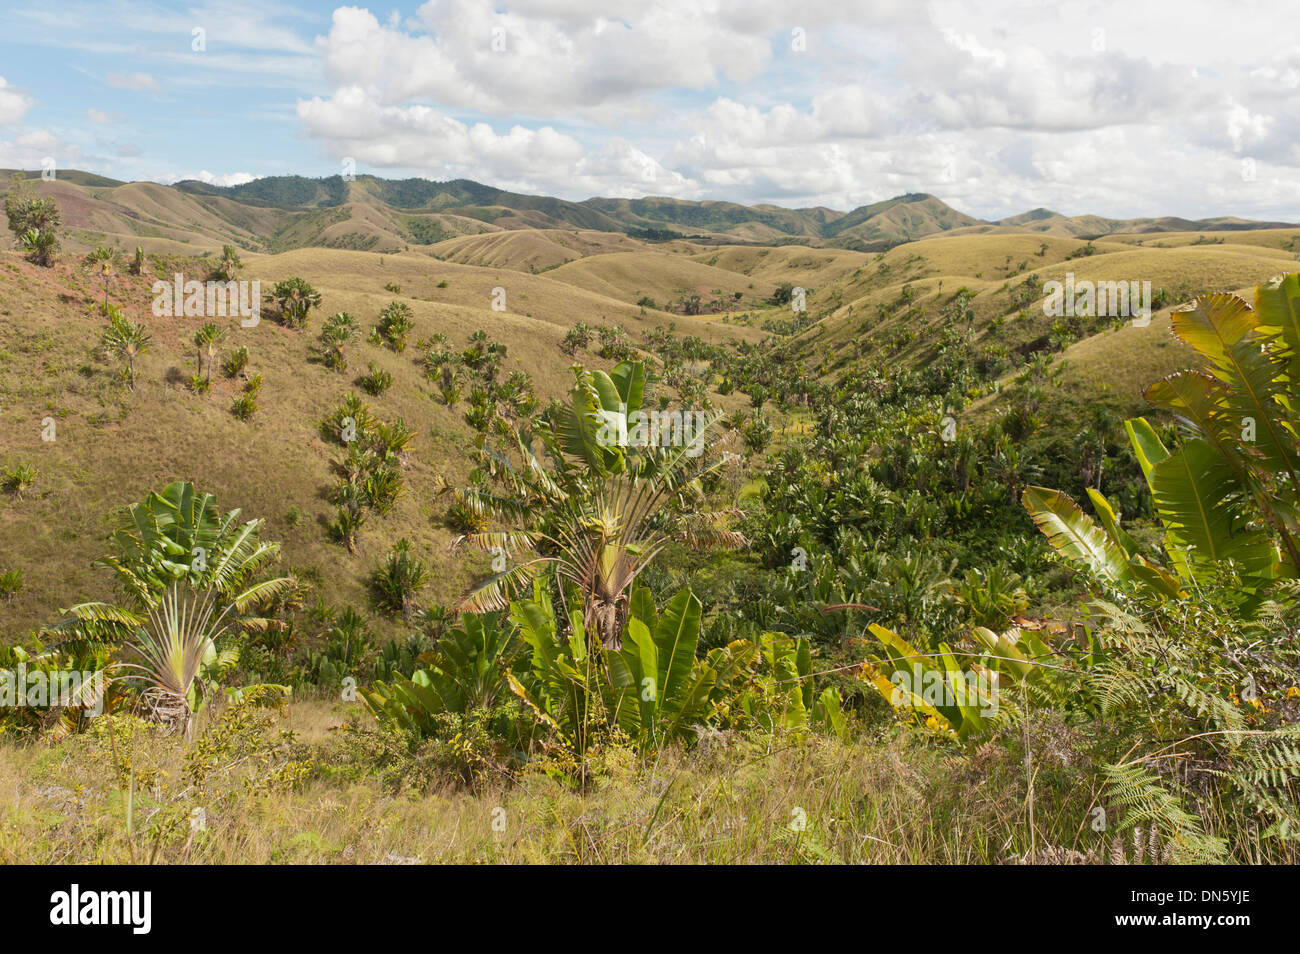 Deforested hills with forests of Traveller's Trees or Traveller's Palms (Ravenala madagascariensis) in the valleys, in their - Stock Image